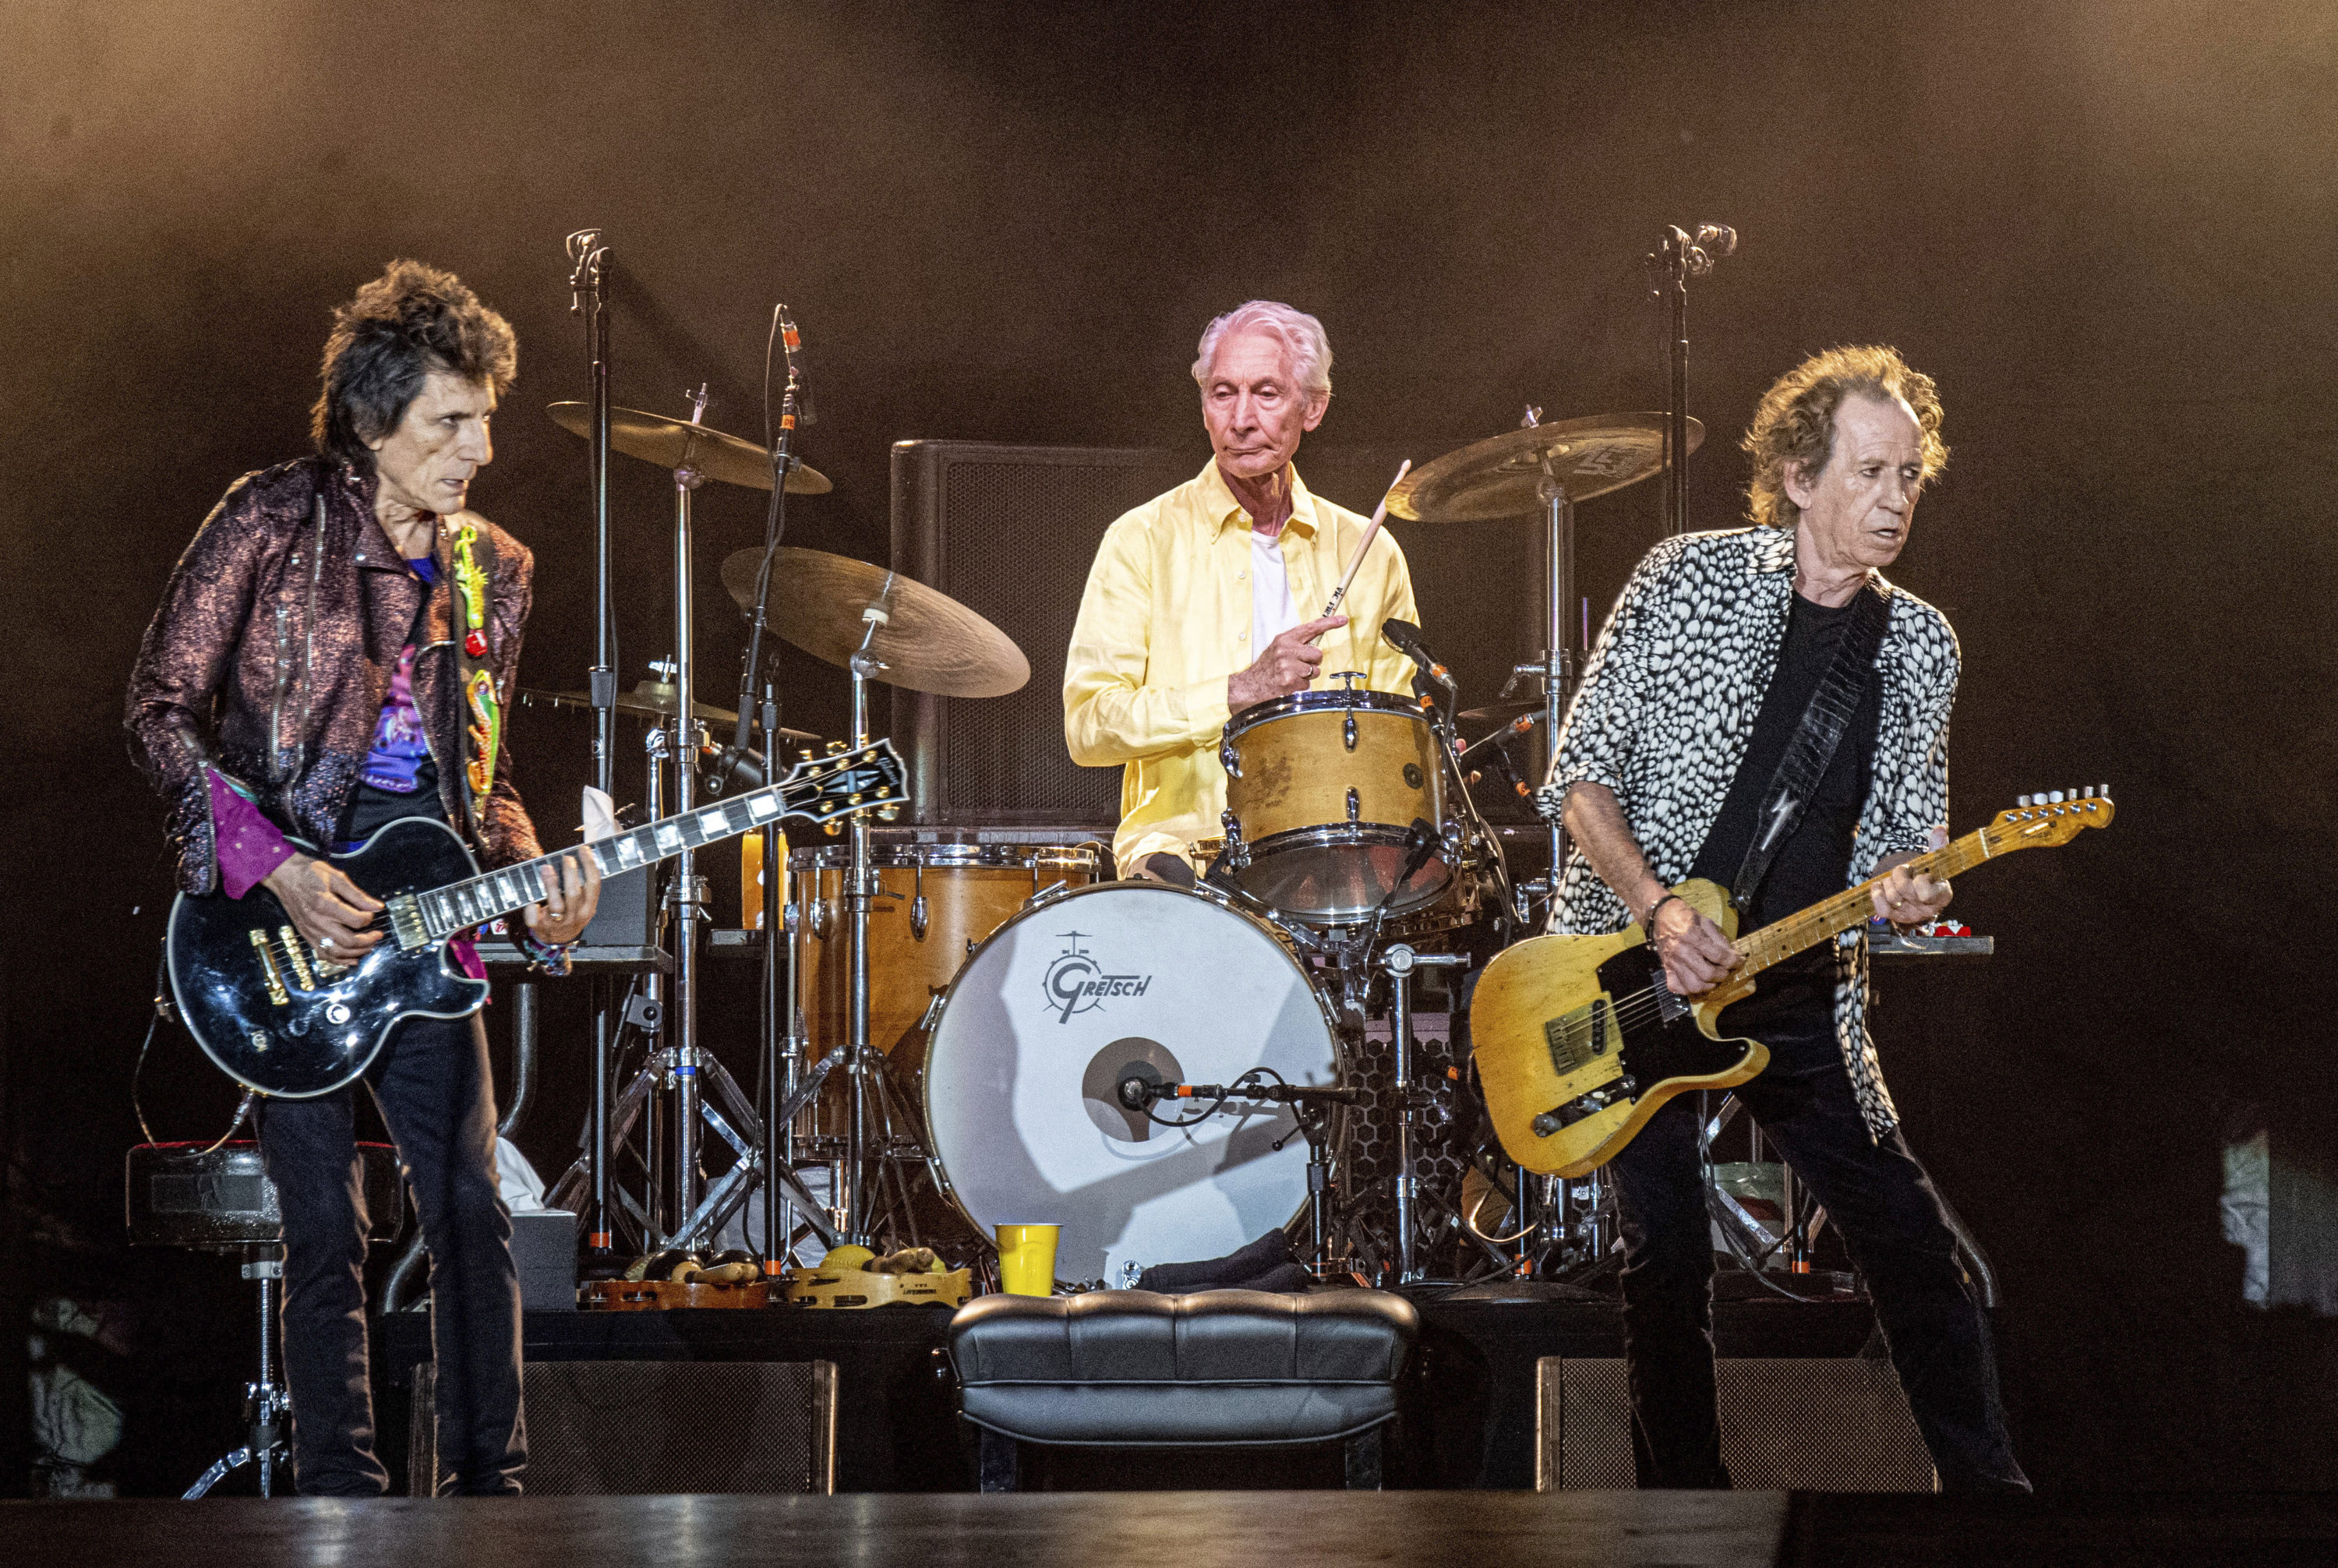 From left, Ronnie Wood, Charlie Watts and Keith Richards of The Rolling Stones perform on July 15, 2019, in New Orleans. Watts' publicist, Bernard Doherty, said Watts passed away peacefully in a London hospital surrounded by his family on Tuesday, Aug. 24, 2021. He was 80. (Amy Harris/Invision/AP)